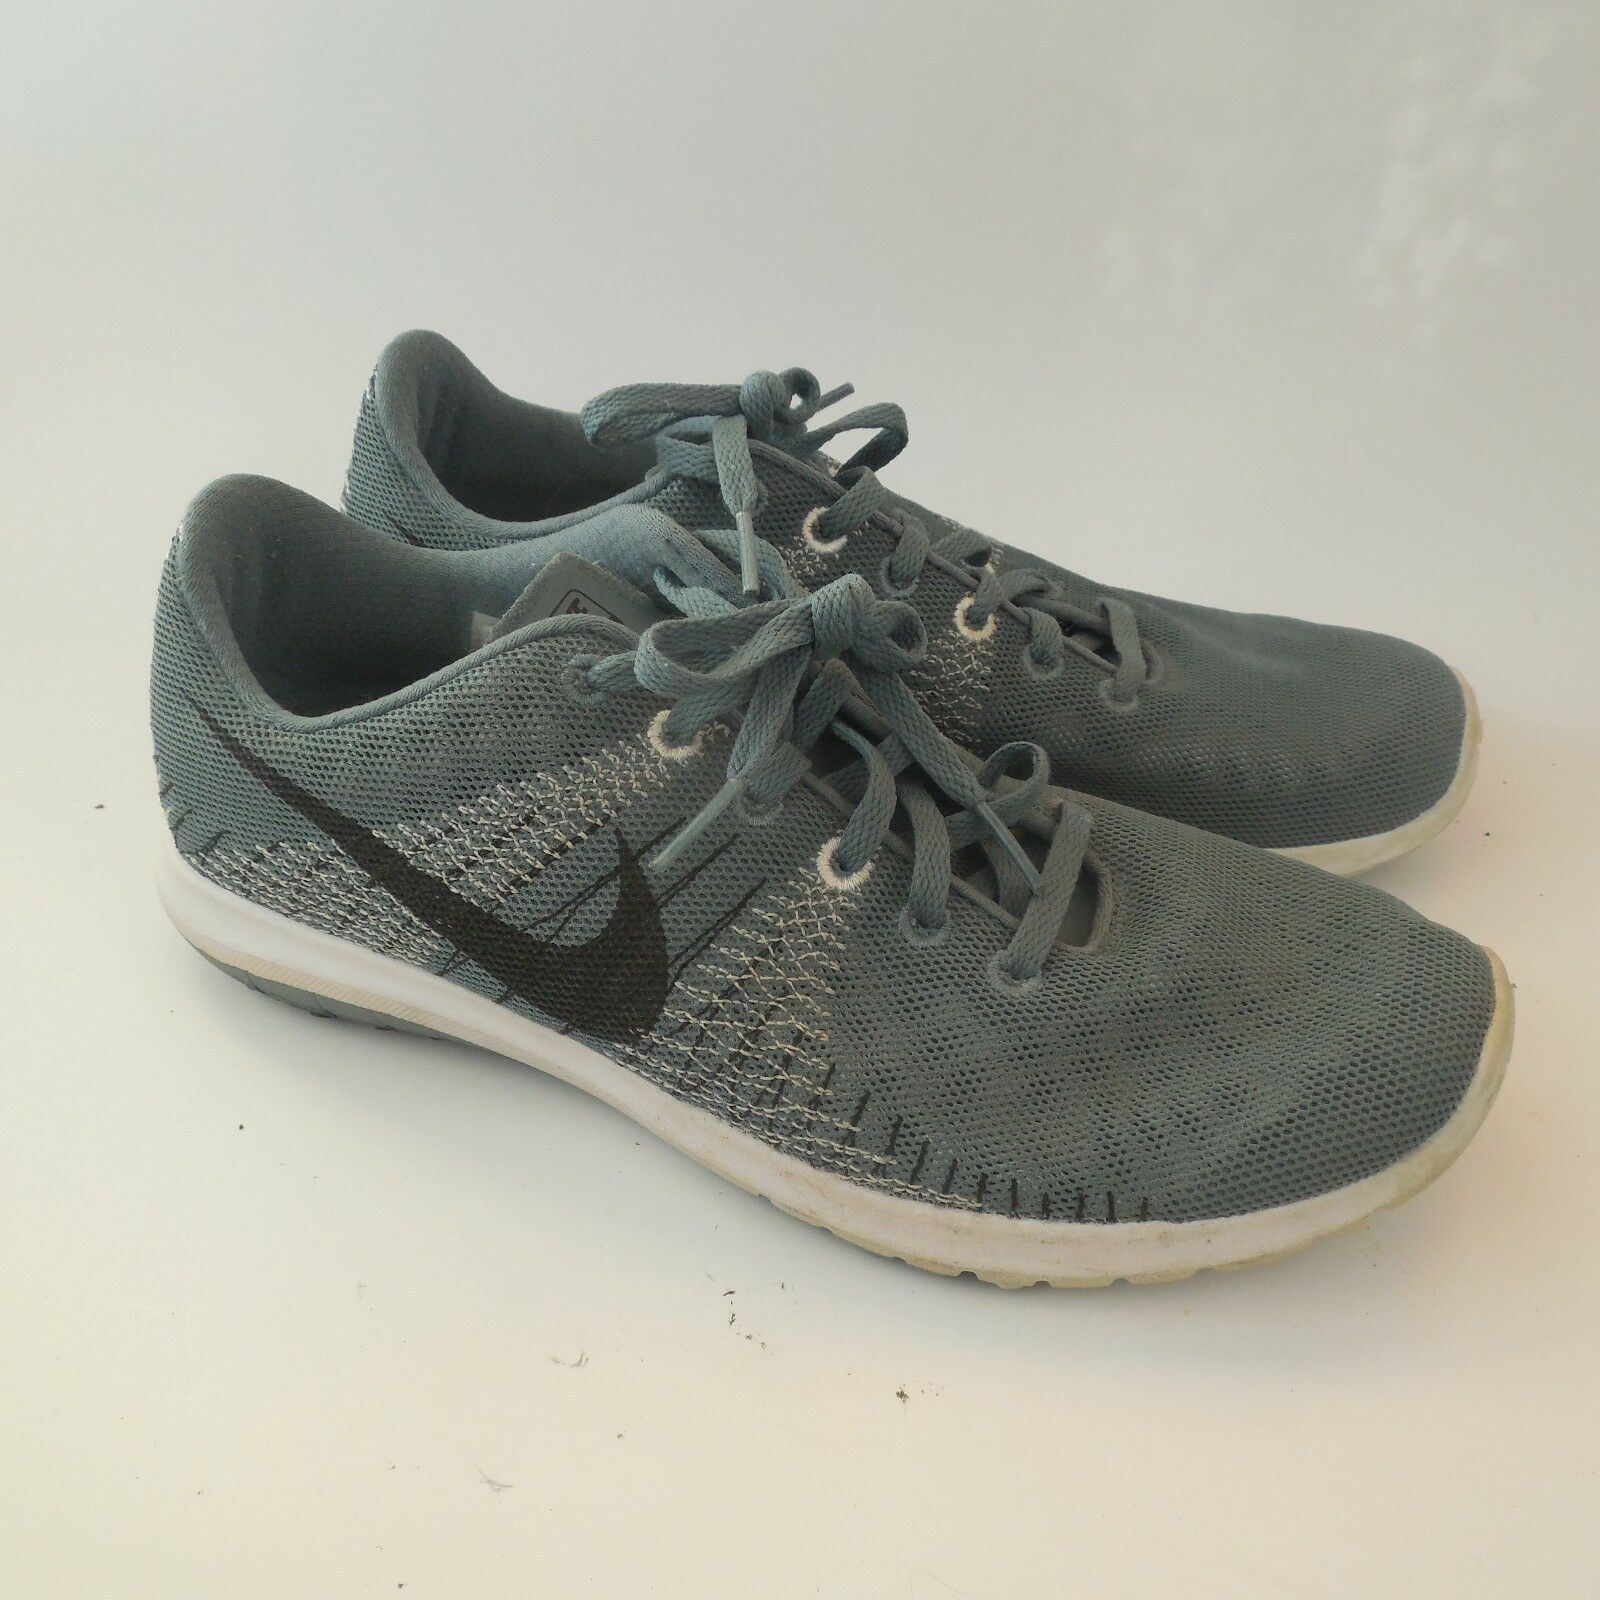 Brand discount Nike Flex Fury Running Shoes Light Sneaker 705298-401 Mens 7 Med Gray No Insoles